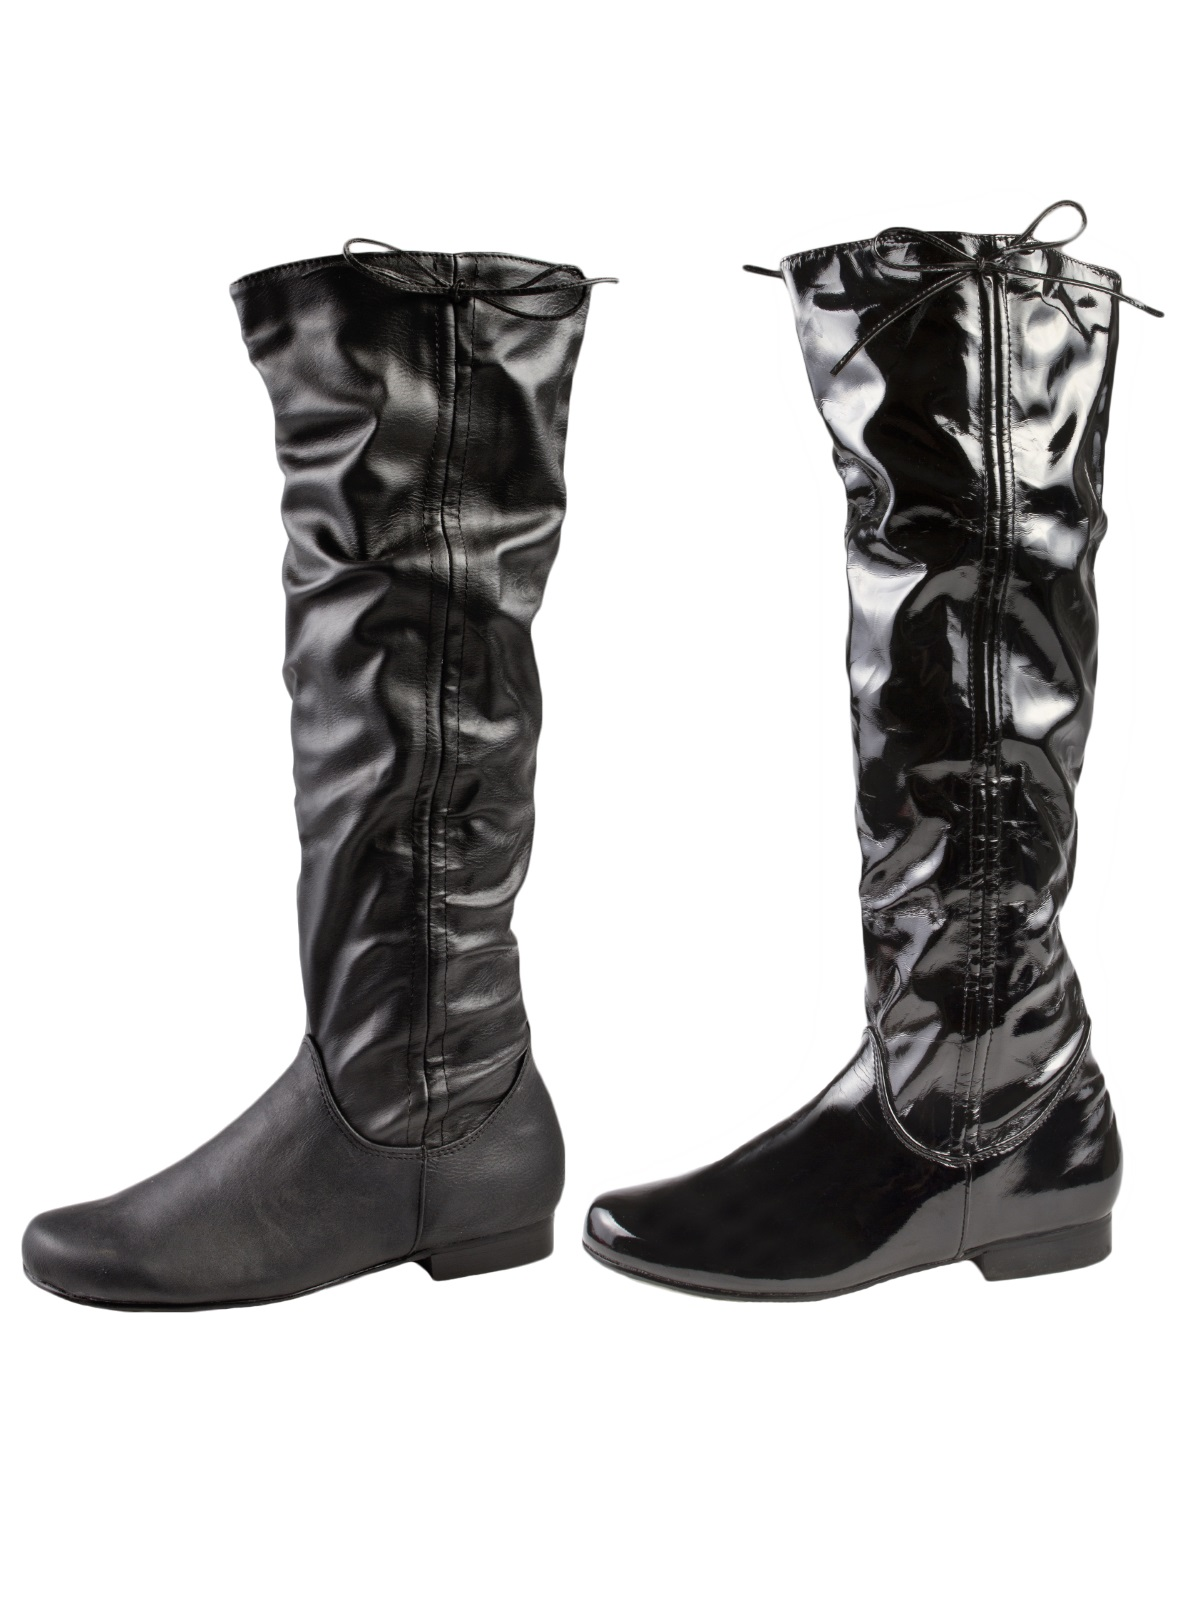 Find great deals on eBay for knee high winter boots. Shop with confidence.